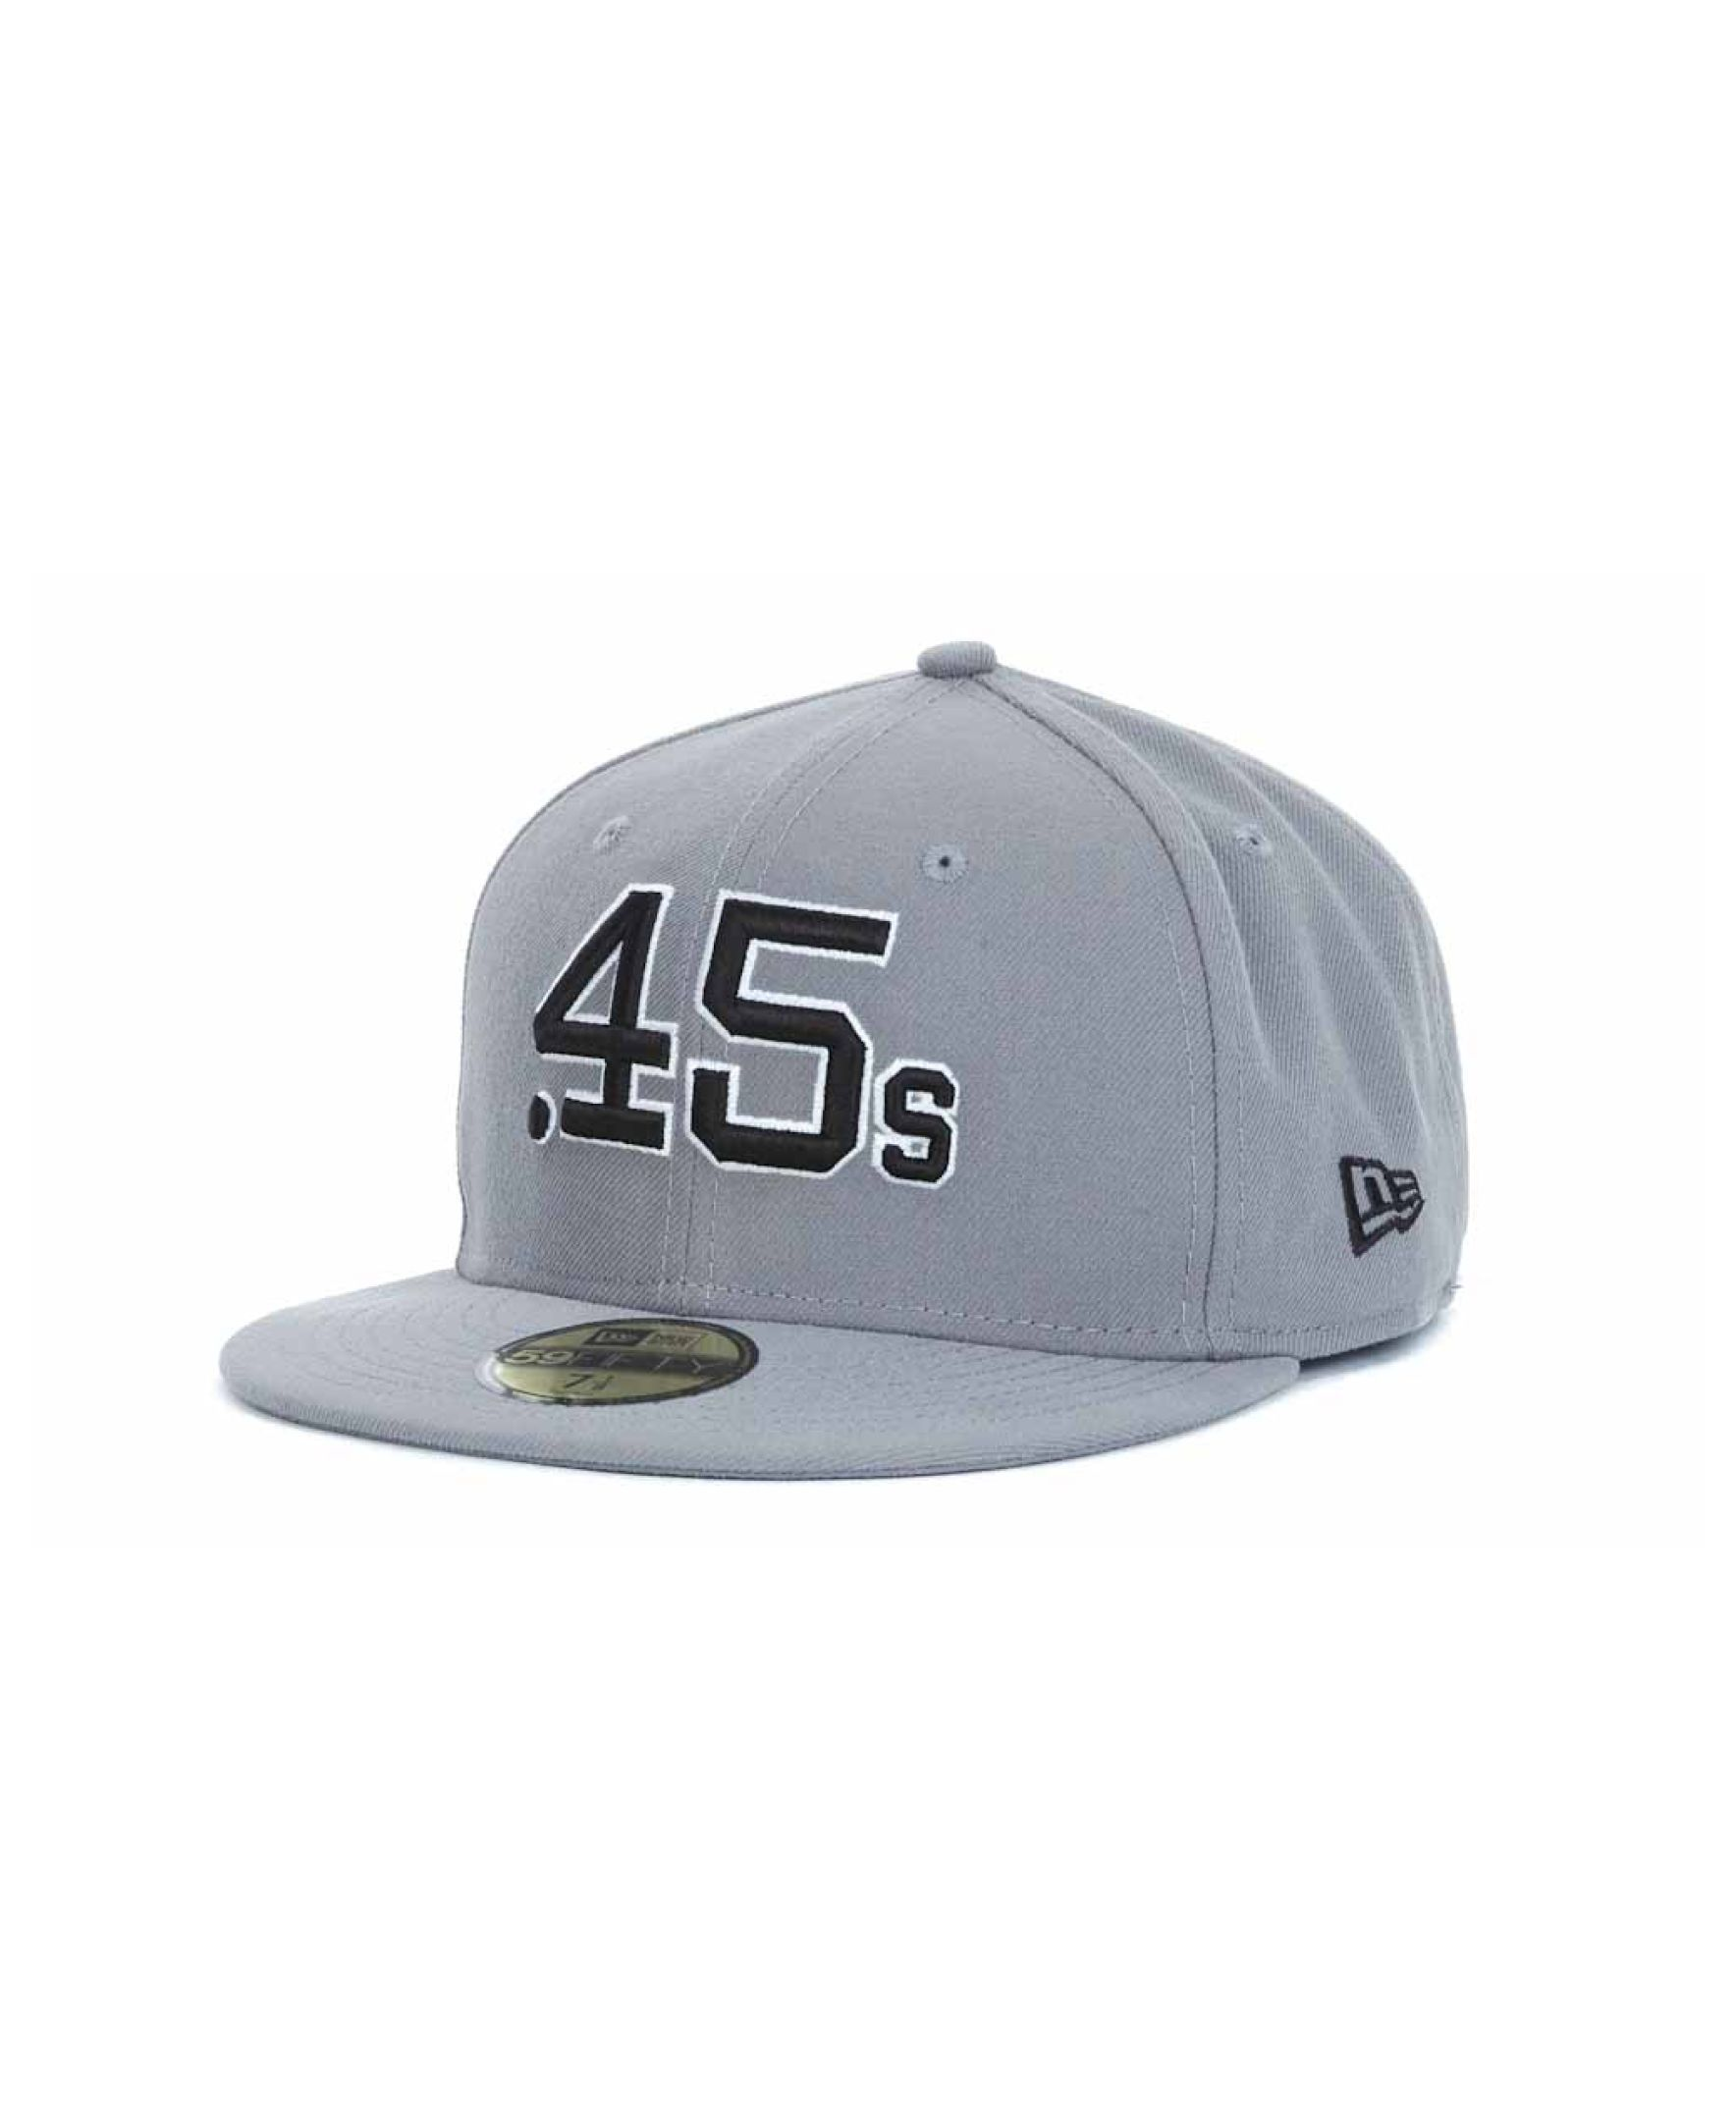 43cb8707d7c New Era Houston Colt 45s Mlb Gray Bw 59FIFTY Cap